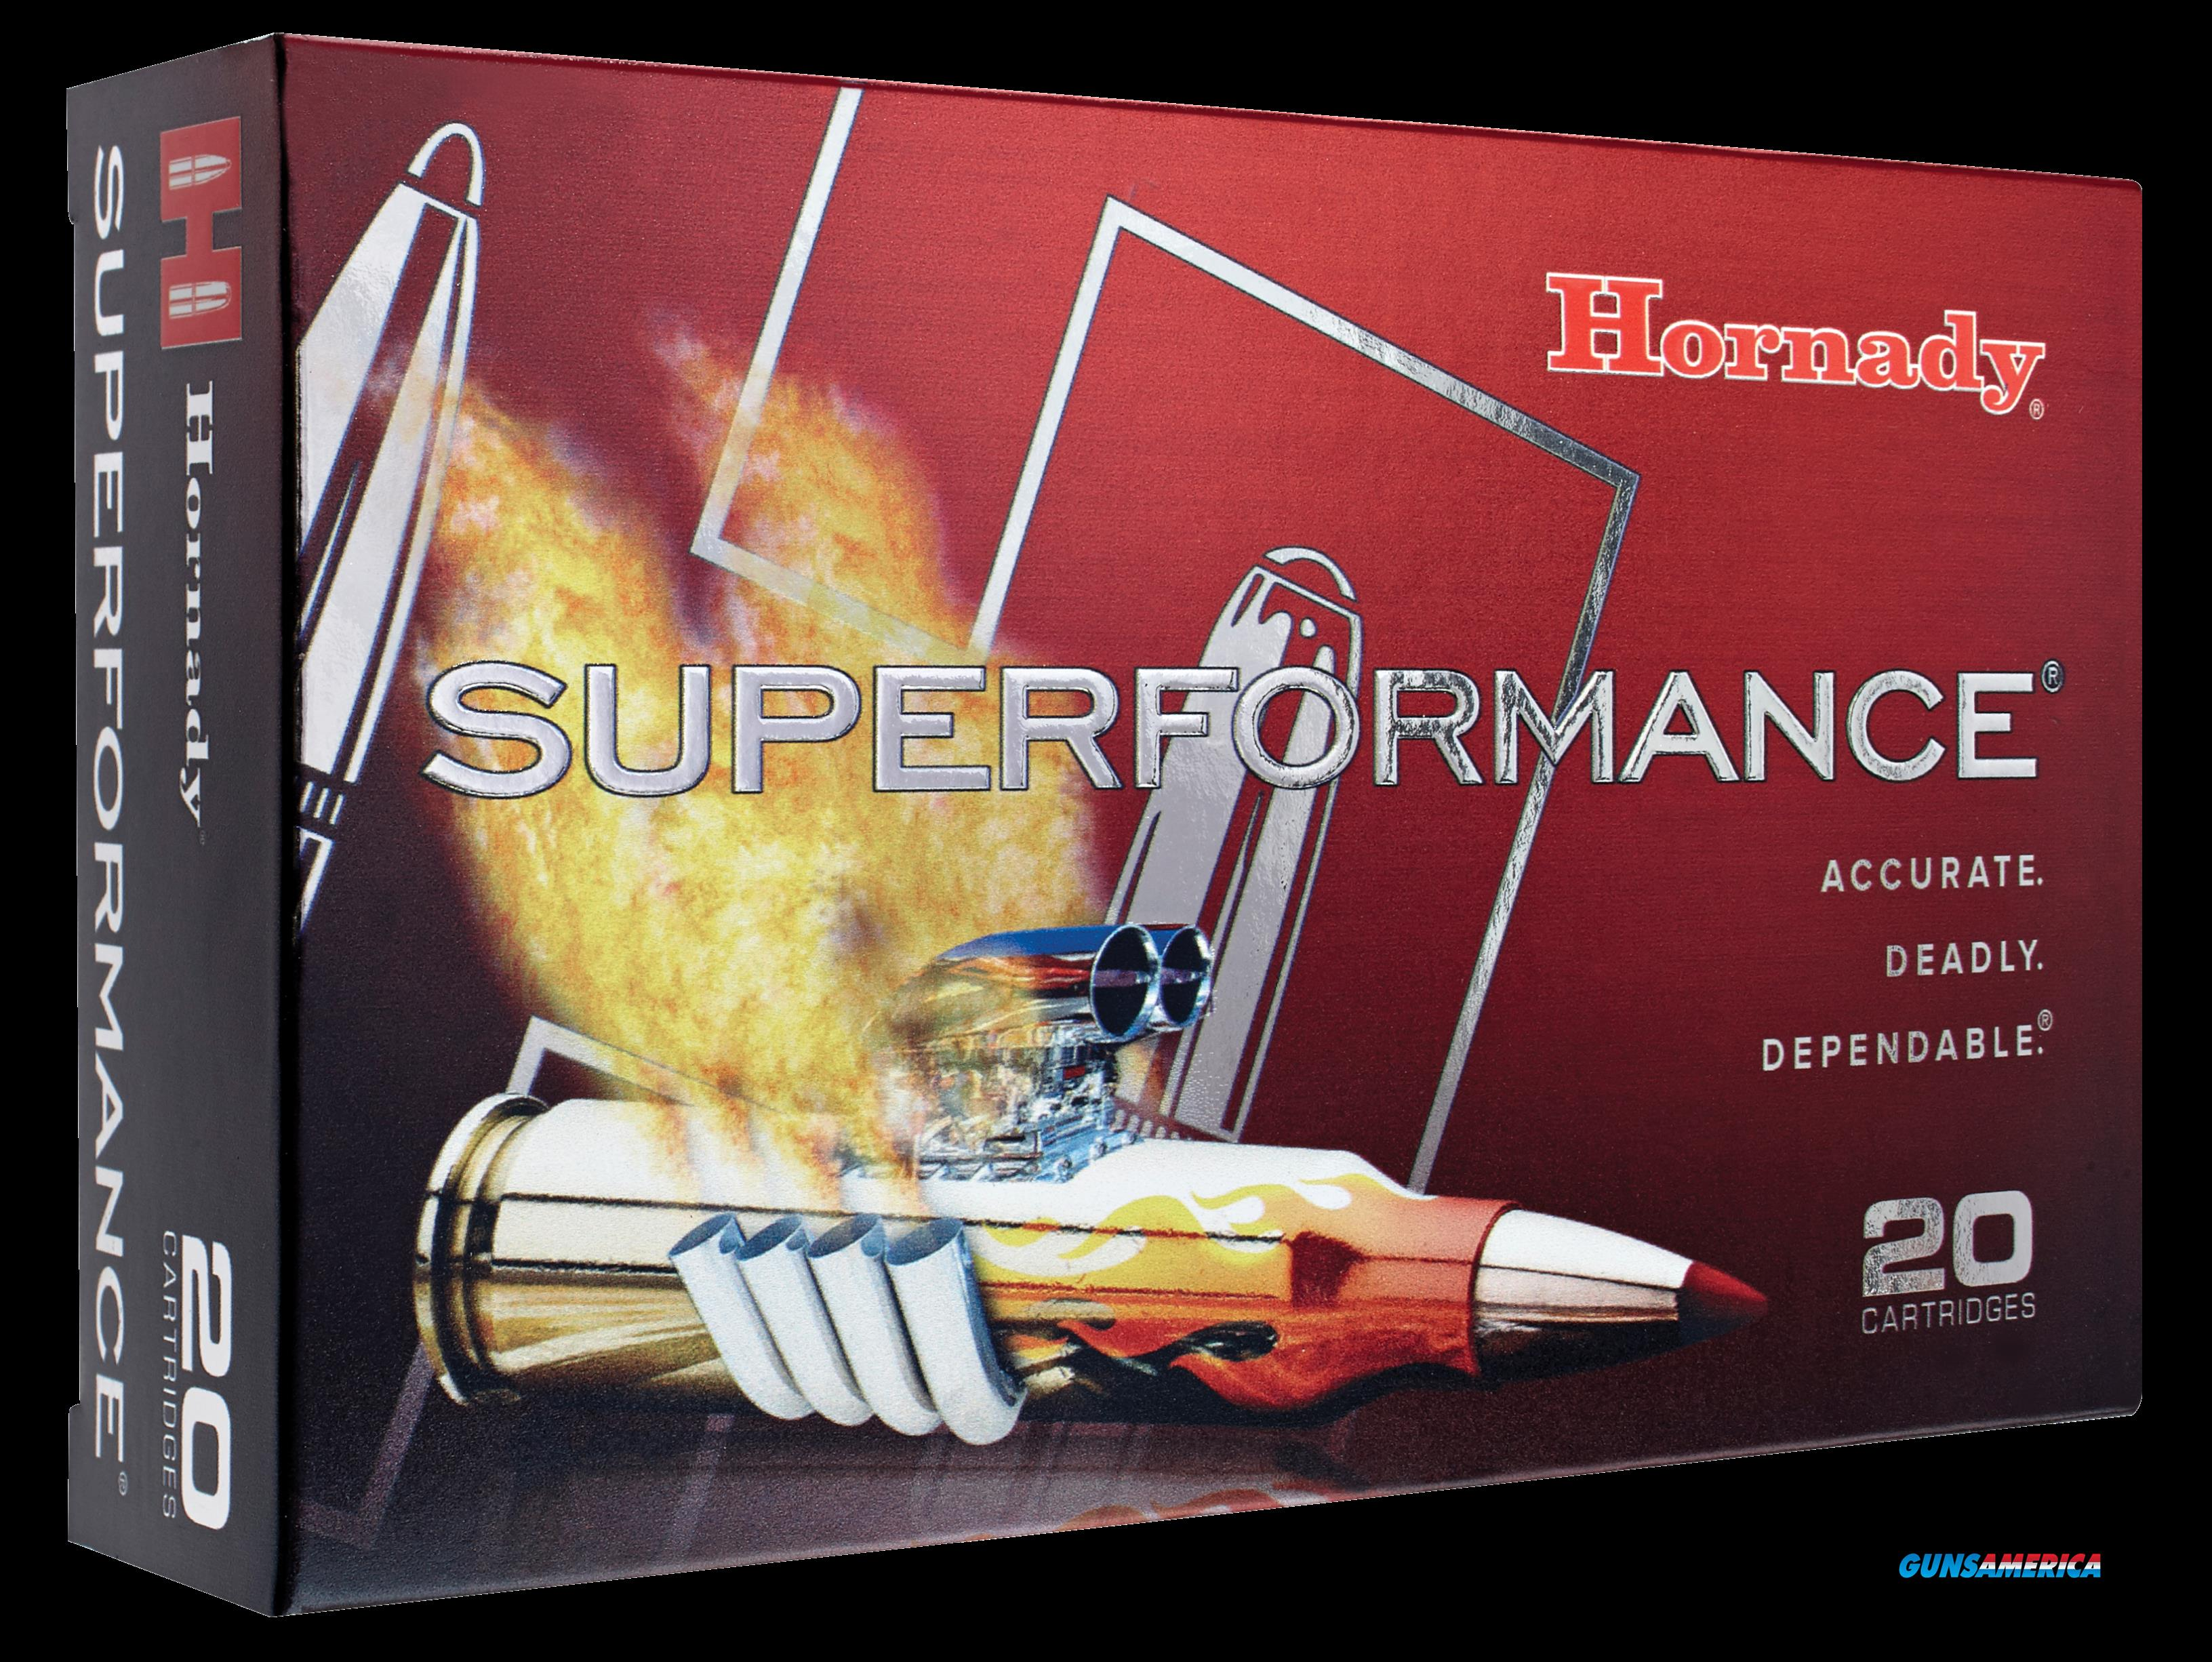 Hornady Superformance, Horn 80463 243 Win  95 Sst Spf   20-10  Guns > Pistols > 1911 Pistol Copies (non-Colt)